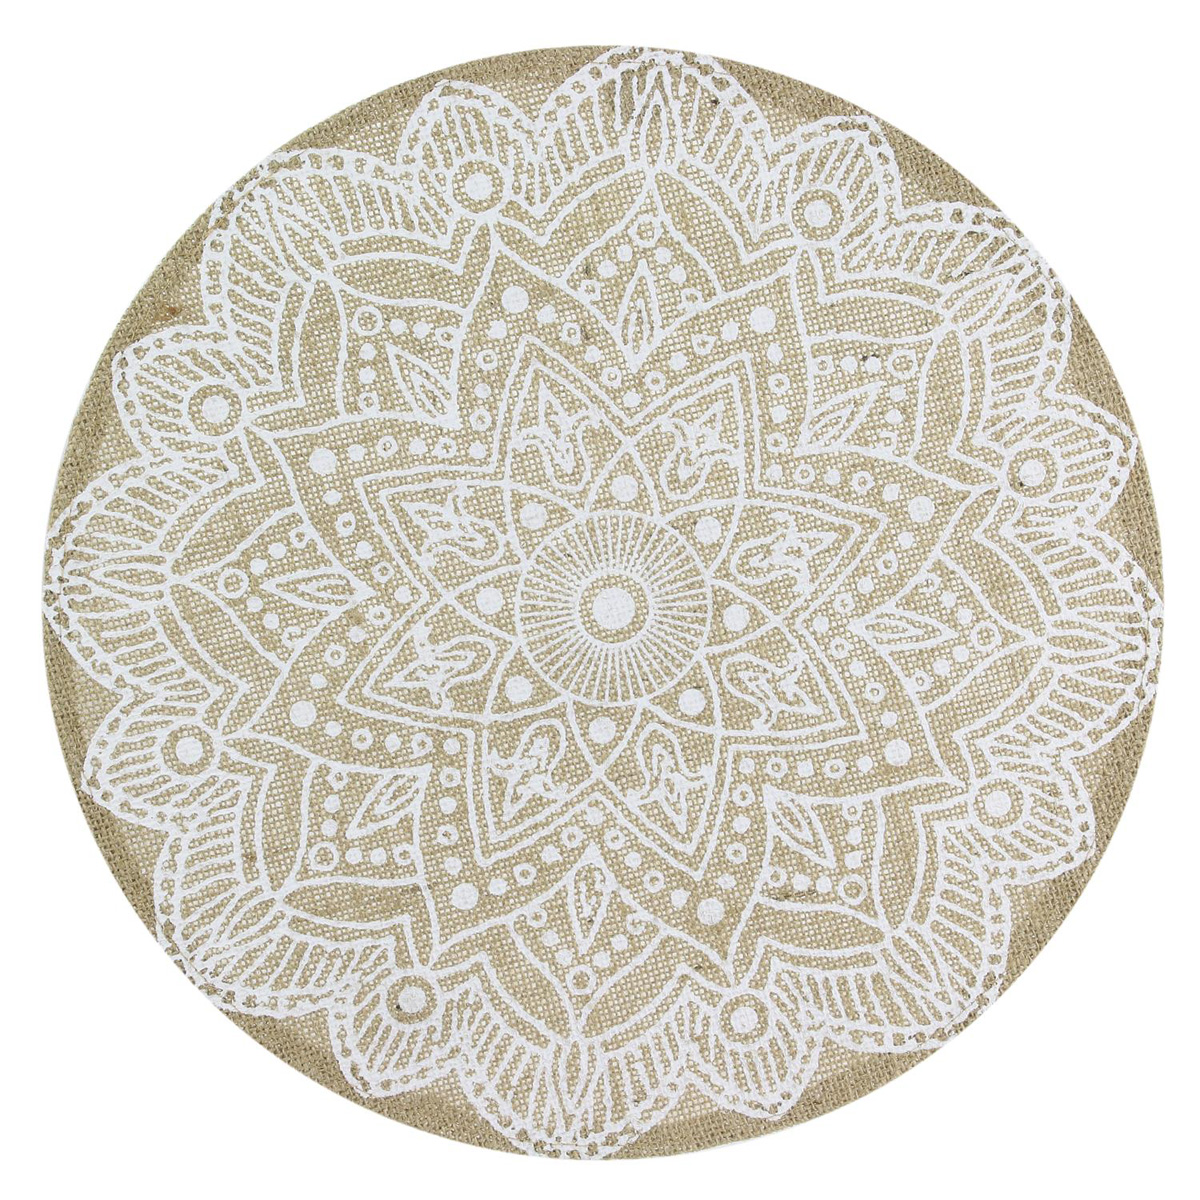 Set de table lin \'Boho\' beige (mandala) - 38 cm - [Q4424]